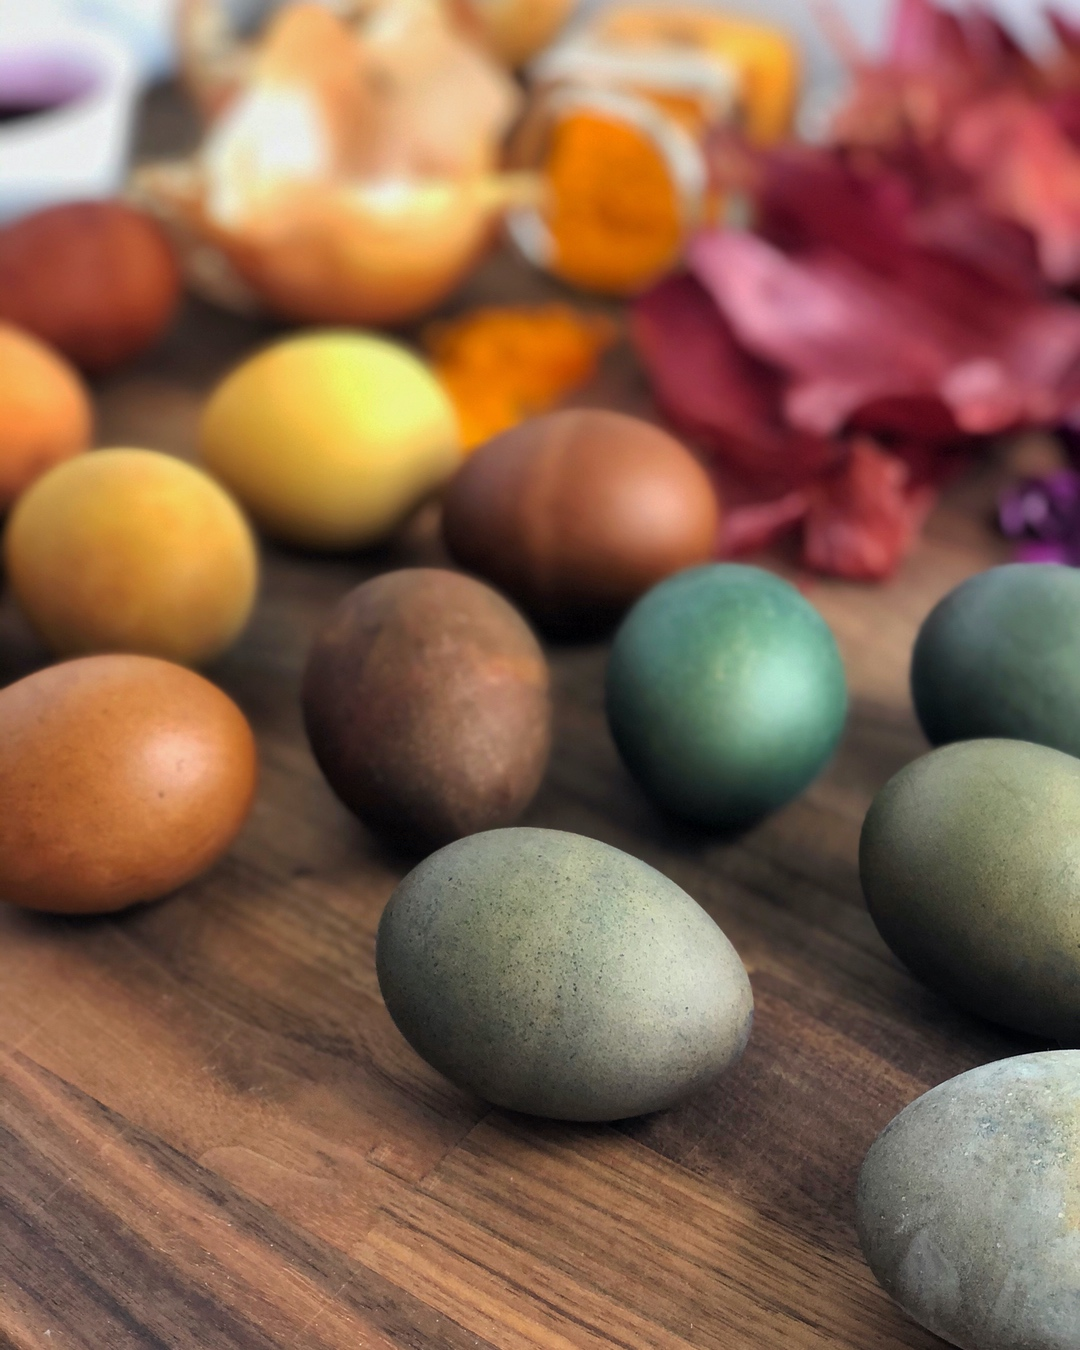 dye-eggs-naturally-ig-colors-2